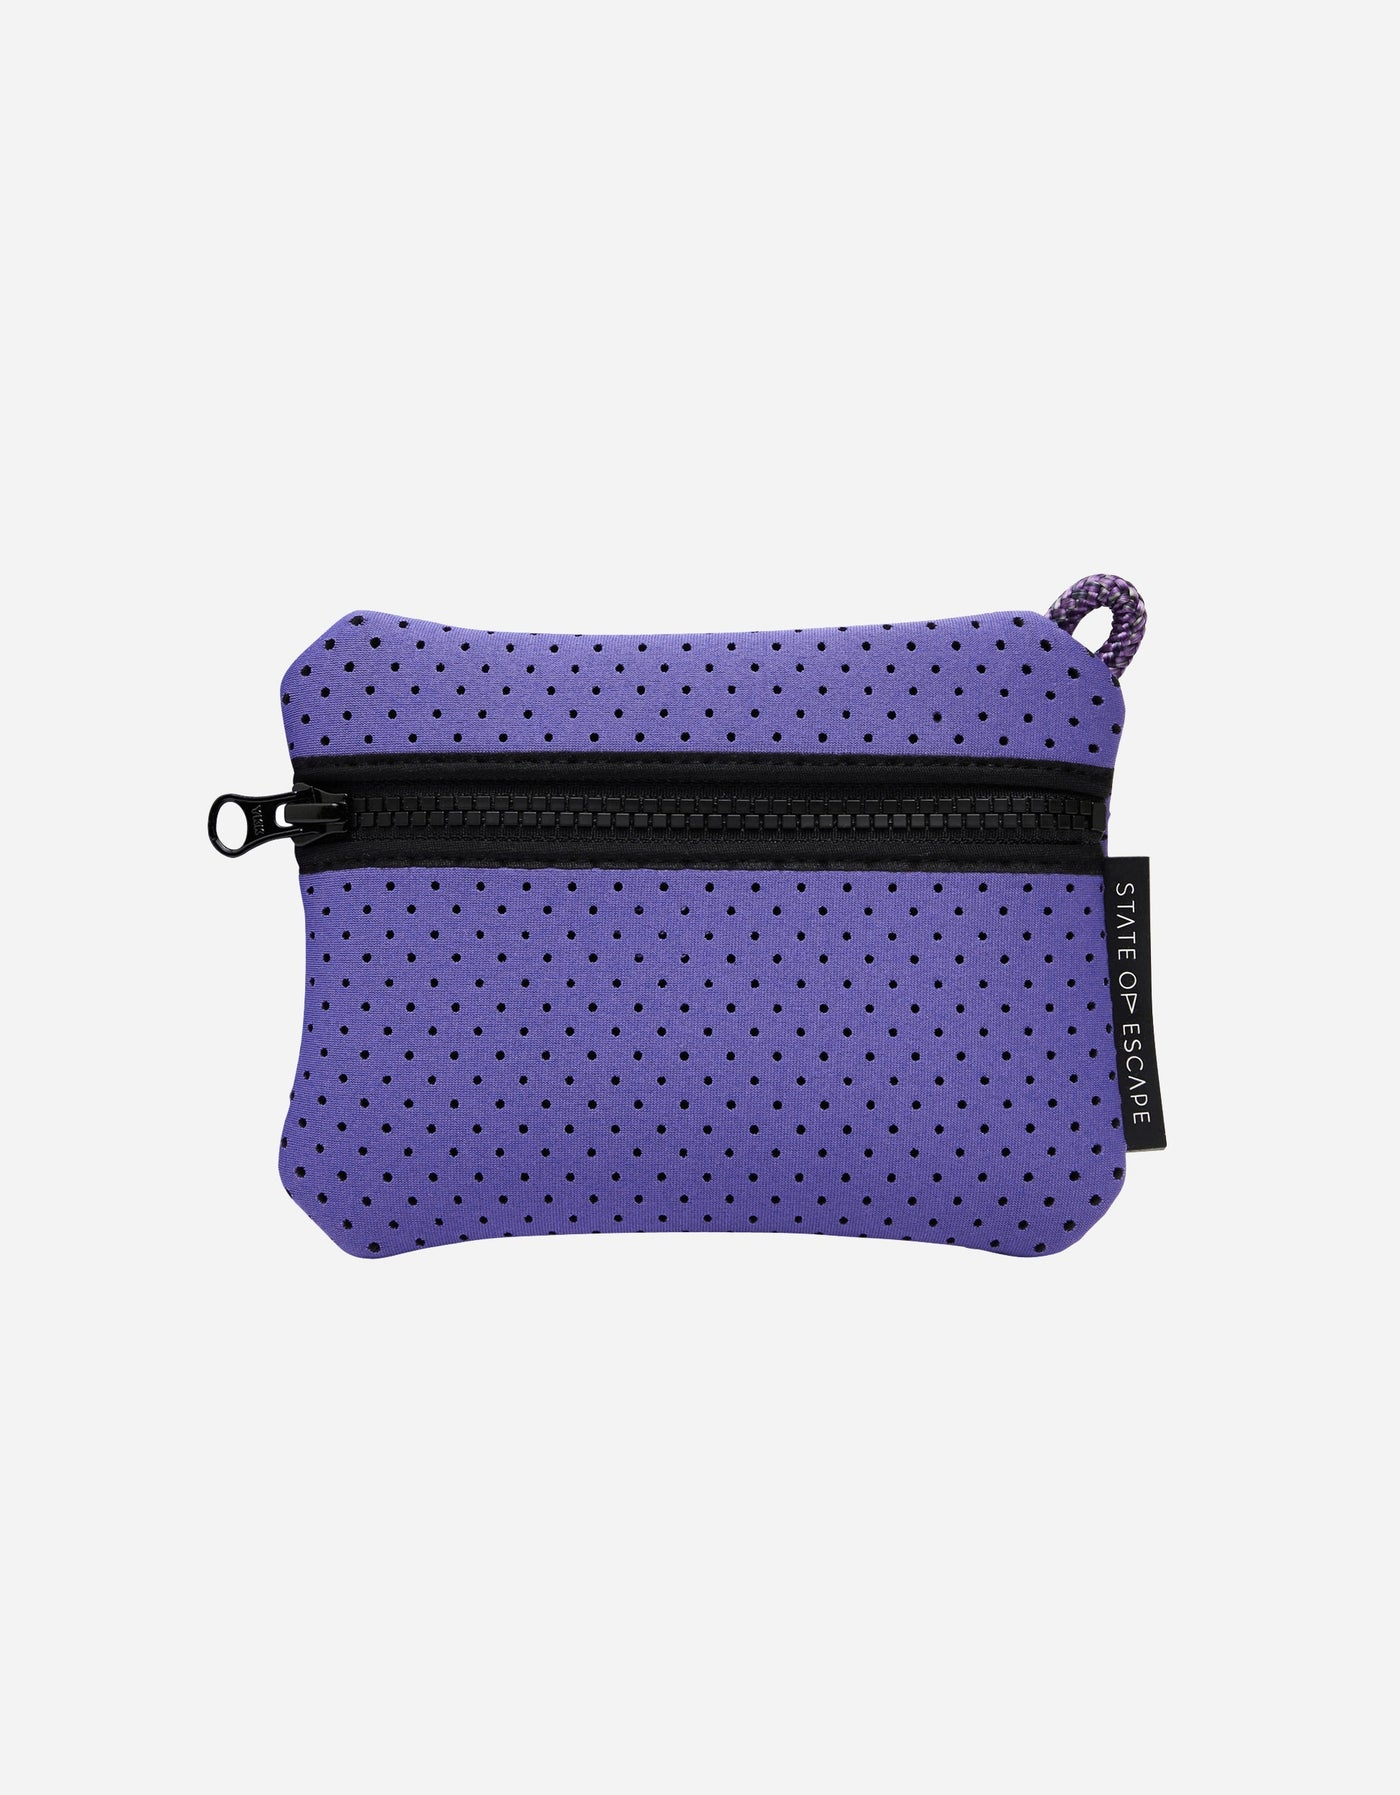 Escape™ tote in violet